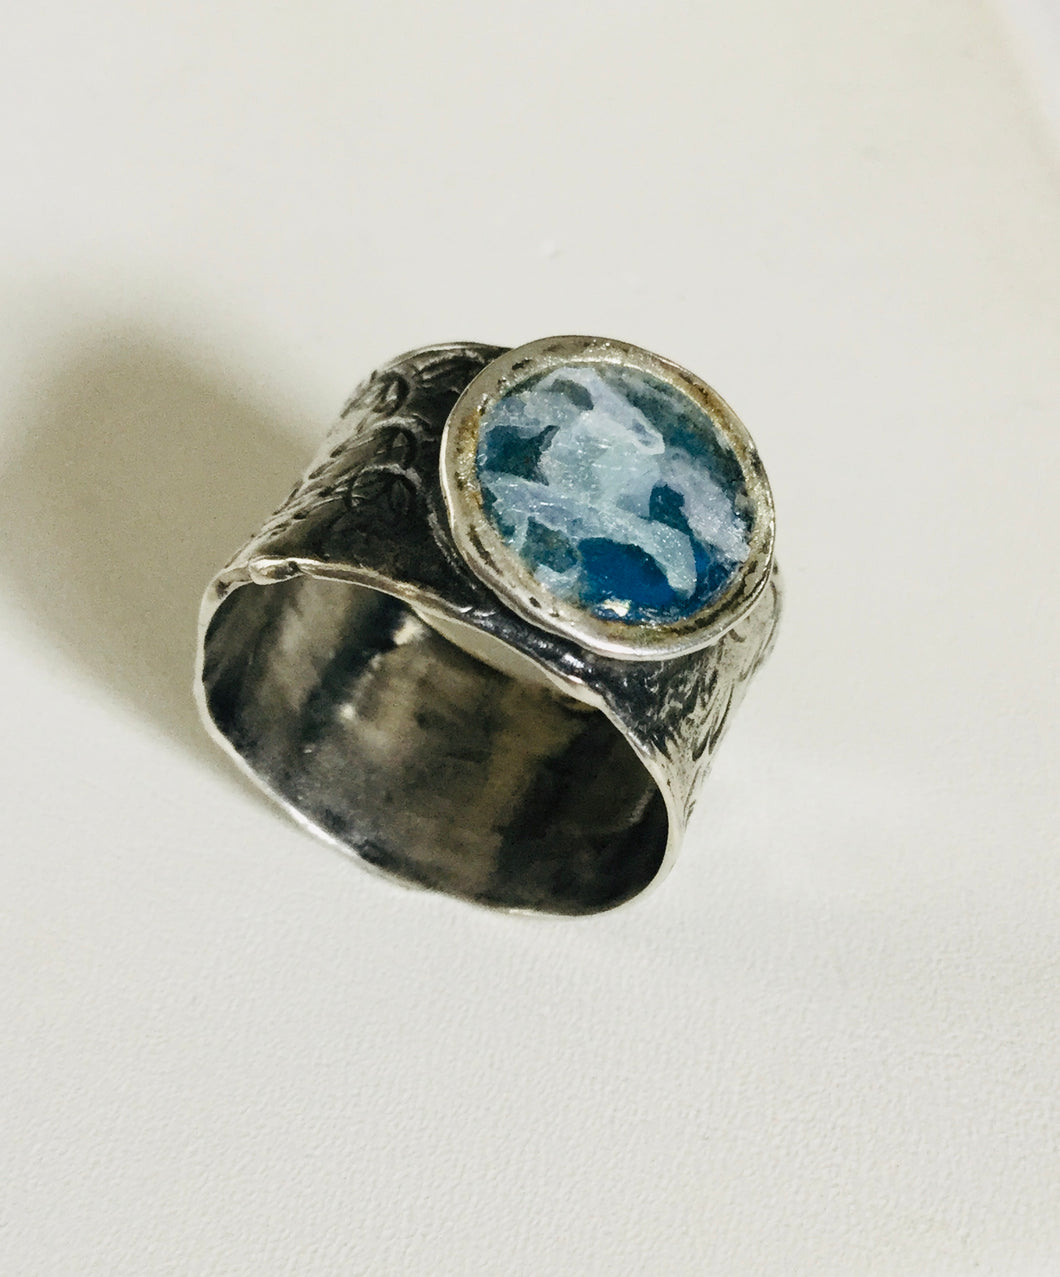 Roman Glass cigar band style ring